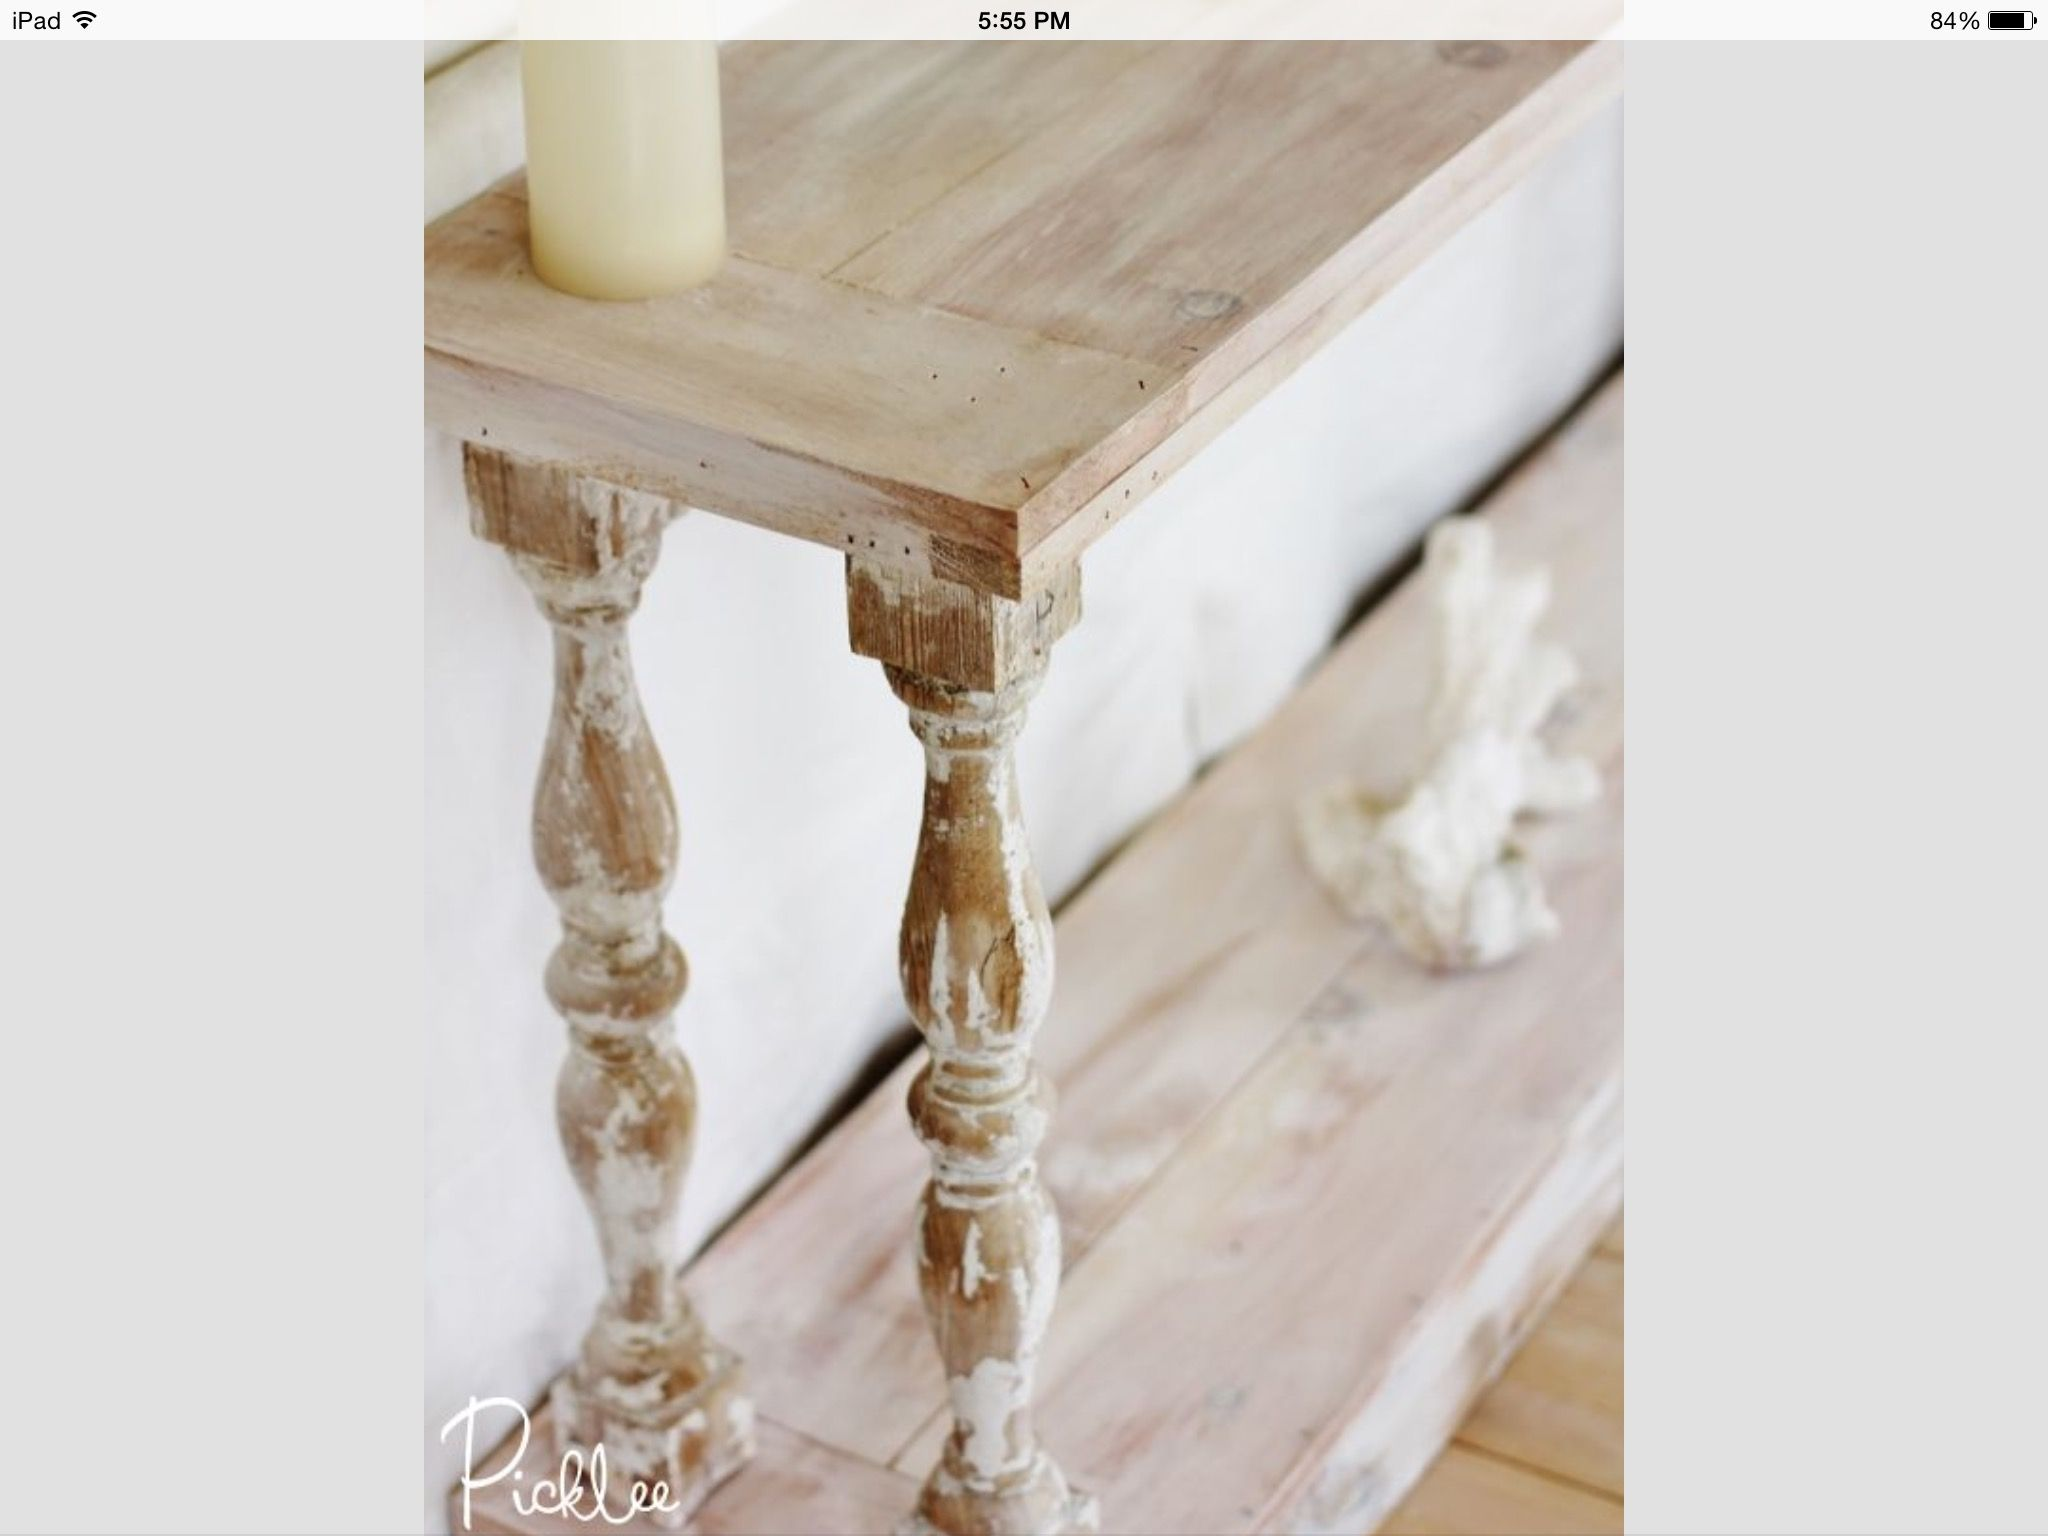 How to make a sofa table out of floor boards - Diy Reclaimed Sofa Table Using Re Purposed Pine Floorboards Antique Balusters Aged With Apple Cider Vinegar Chalk Paint